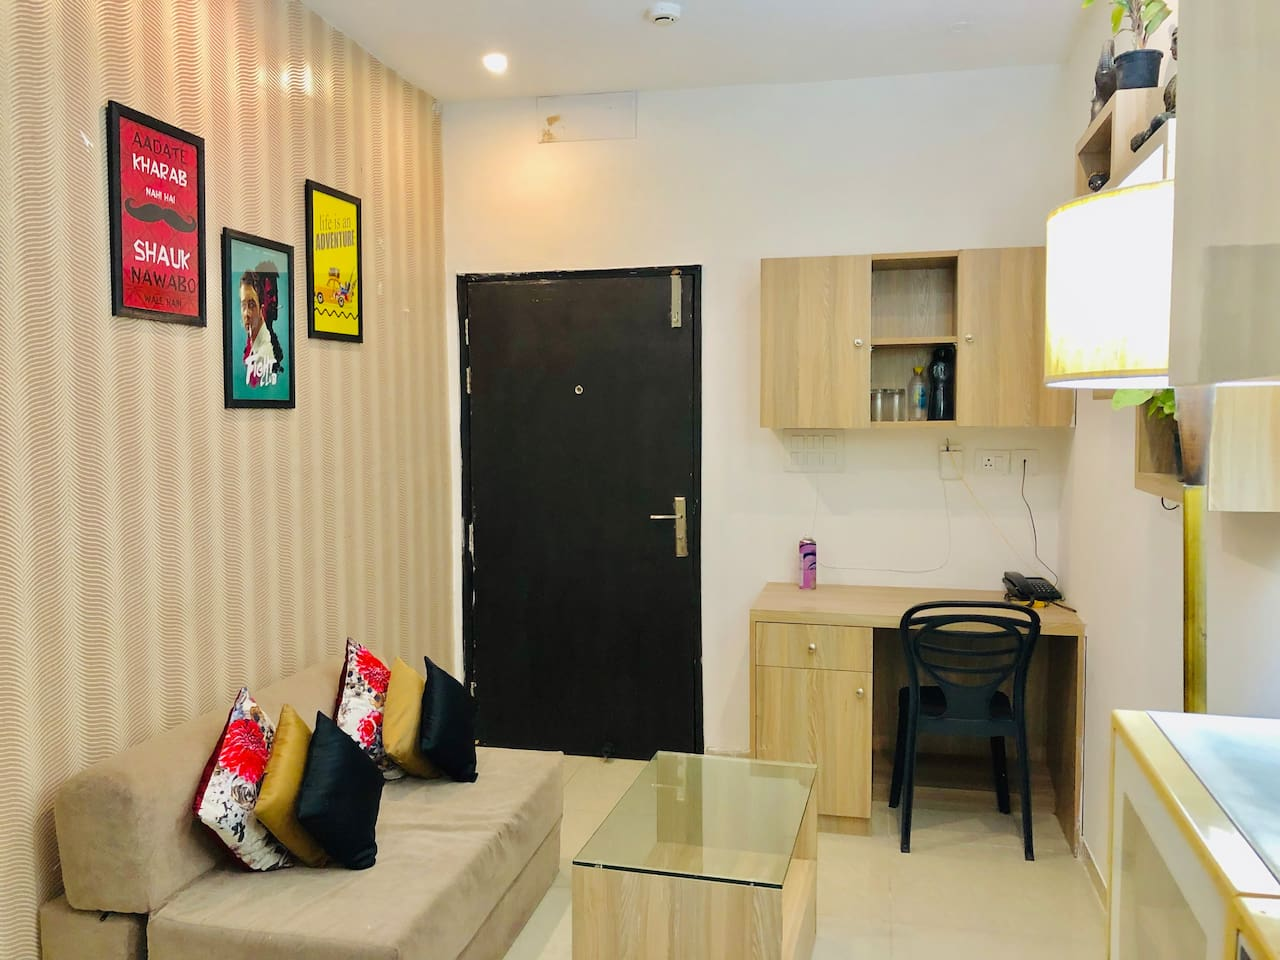 Welcome to the most affordable yet elegant homestay at Noida, 9 km from Great India Place & Worlds of Wonder & 10 Mins drive from Noida Expo Centre, our guests get benefit from complimentary WiFi, Kitchenette, Balcony, Attached bathroom with Bedroom